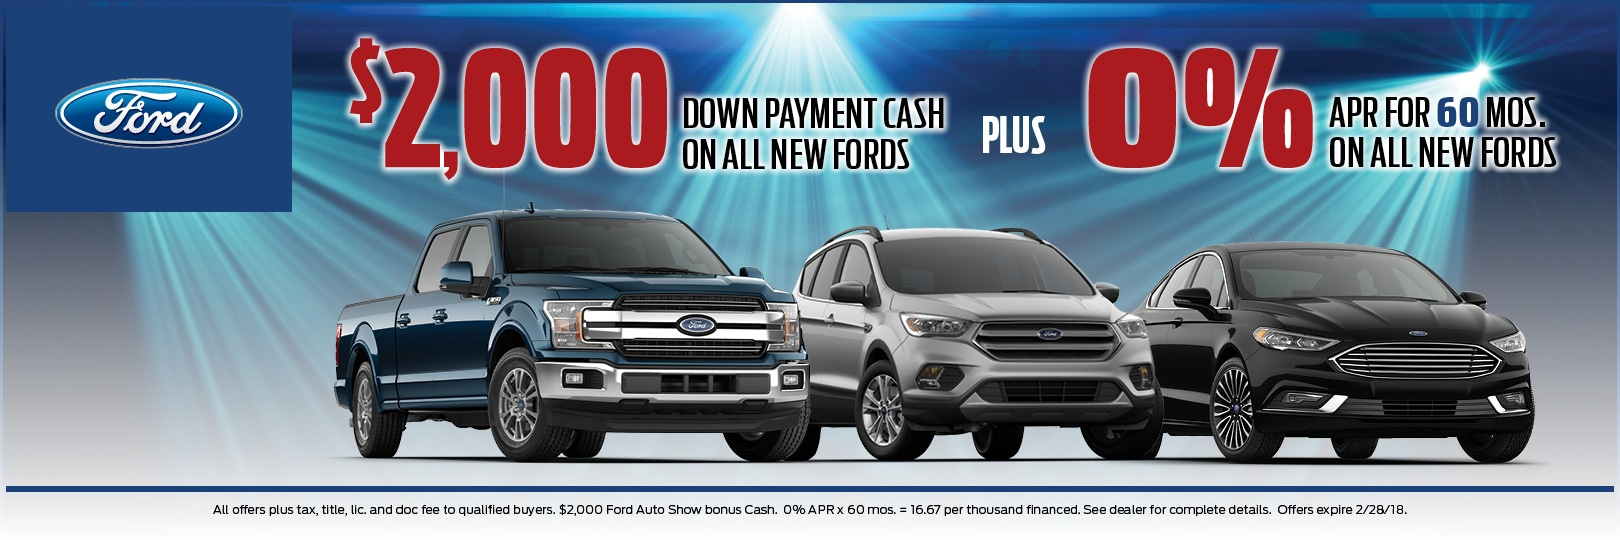 New Ford Vehicle Specials In Countryside IL Westfield Ford - All ford vehicles